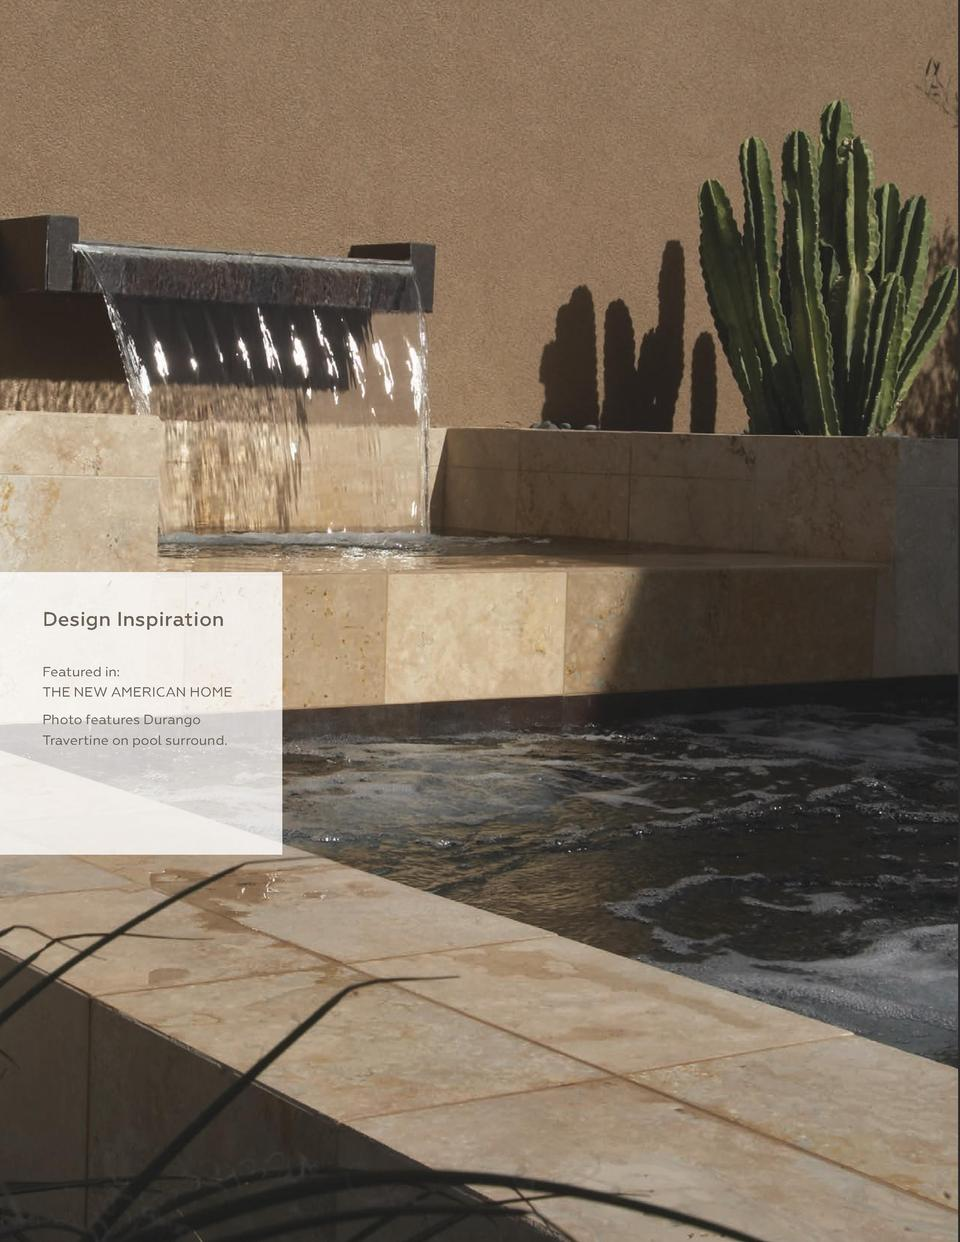 392  S P R I N G 2 01 5  Design Inspiration Featured in  THE NEW AMERICAN HOME Photo features Durango Travertine on pool s...